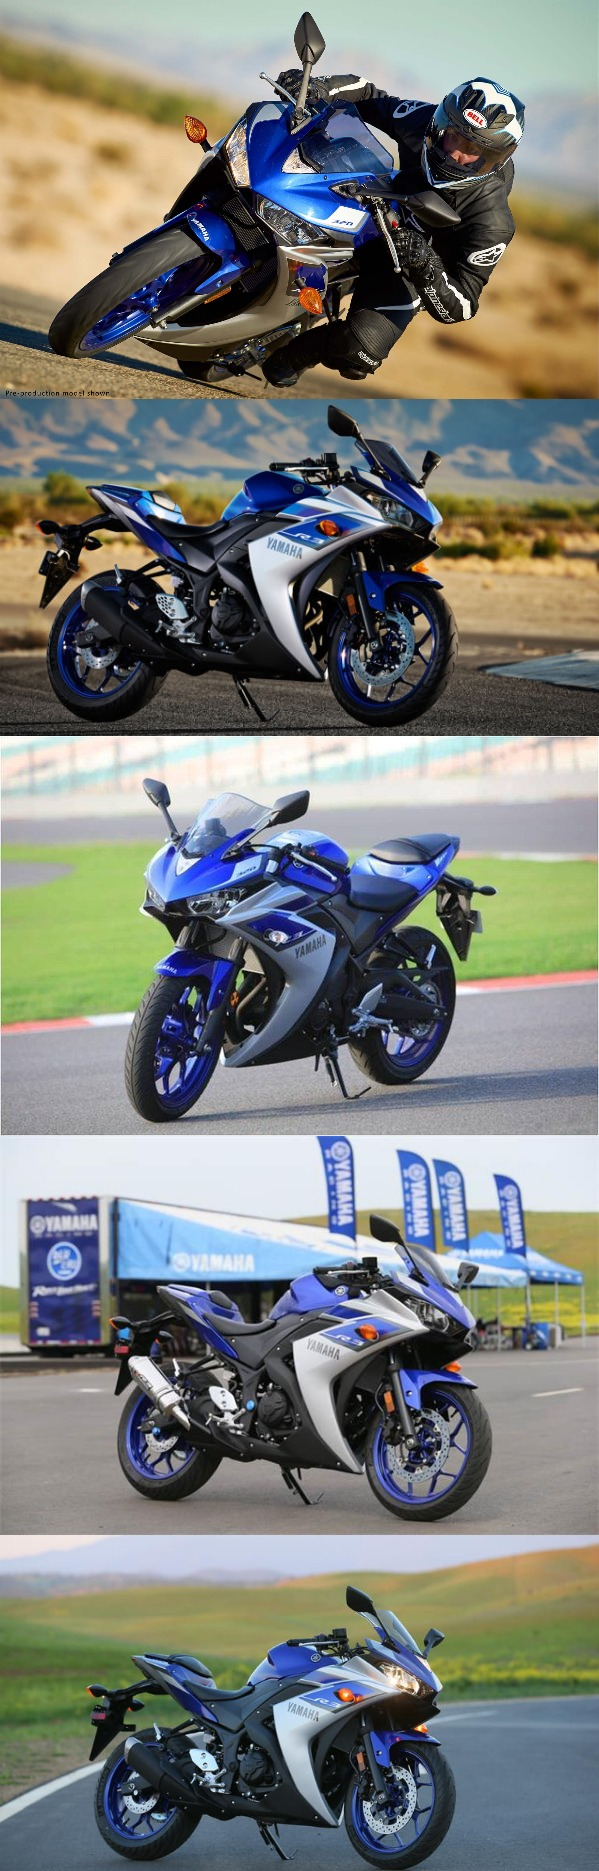 Yamaha motorcycle gloves india -  Yamaha Yzf_r3 Has Been Honored With The